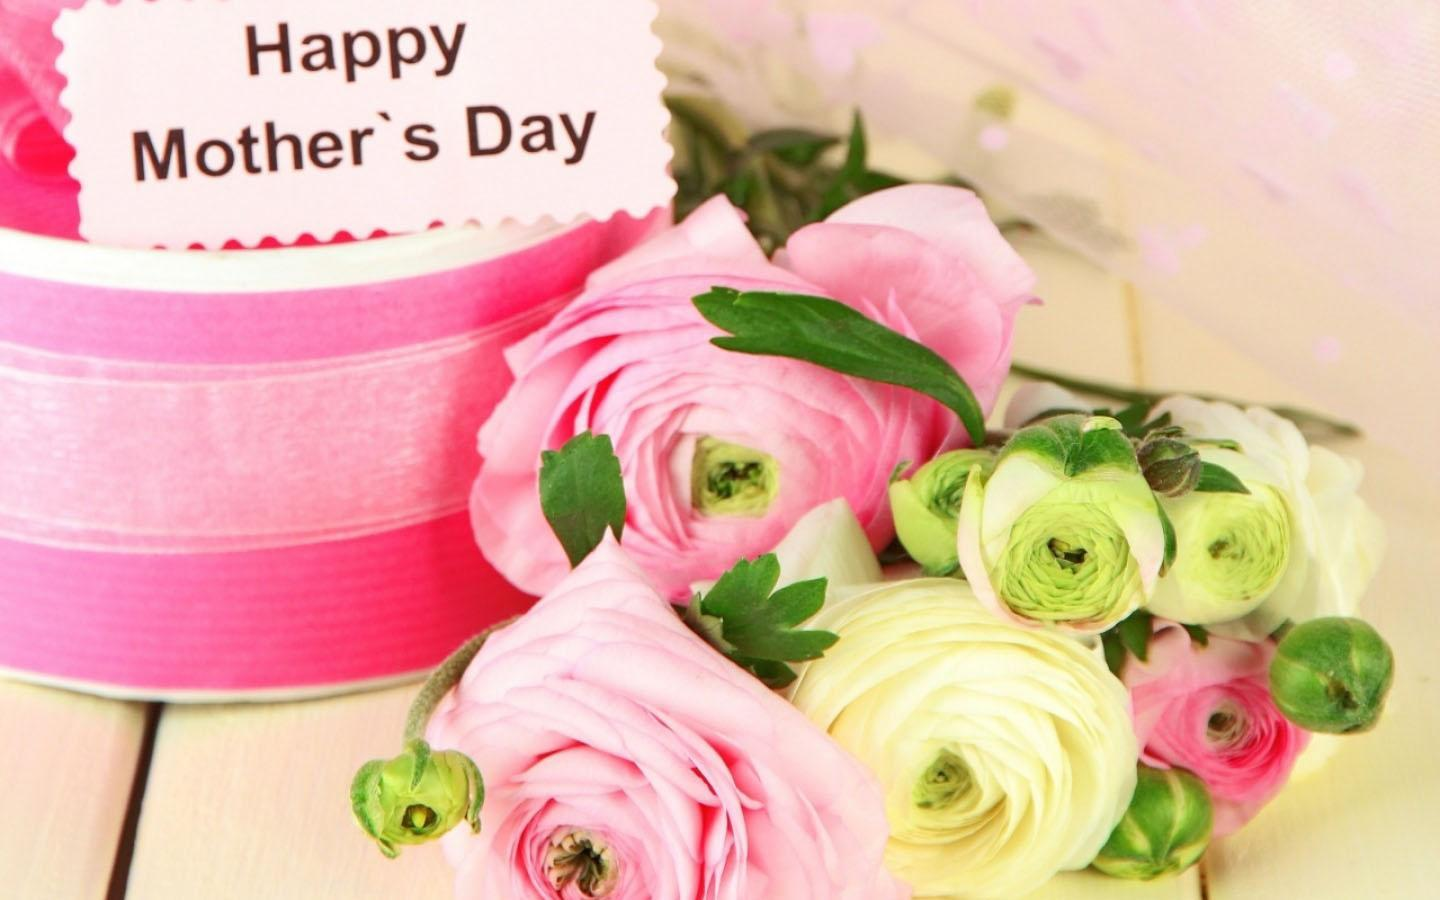 Mother's Day Wallpapers - Android Apps on Google Play